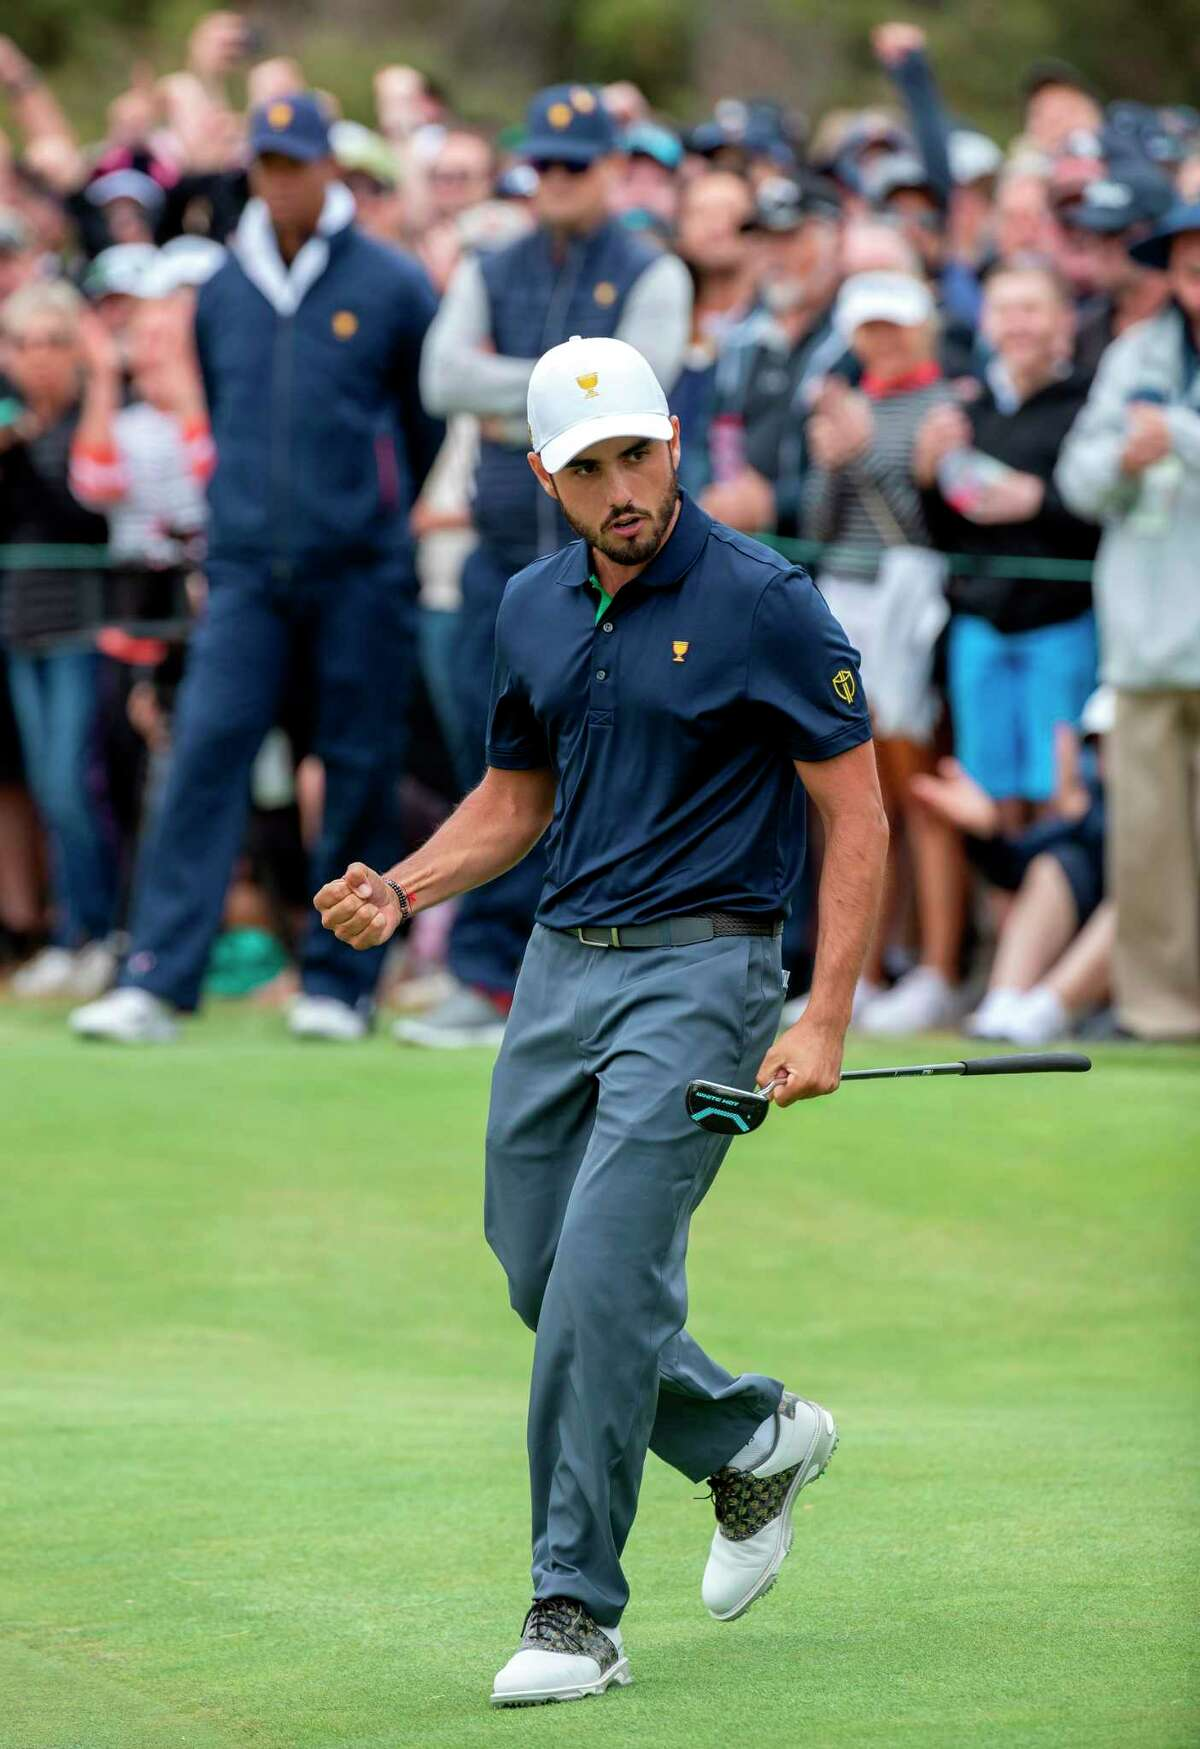 International team member Abraham Ancer of Mexico celebrates sinking a putt to win his match during the Presidents Cup golf tournament in Melbourne on December 14, 2019. (Photo by SIMON BAKER / AFP) / -- IMAGE RESTRICTED TO EDITORIAL USE - STRICTLY NO COMMERCIAL USE -- (Photo by SIMON BAKER/AFP via Getty Images)